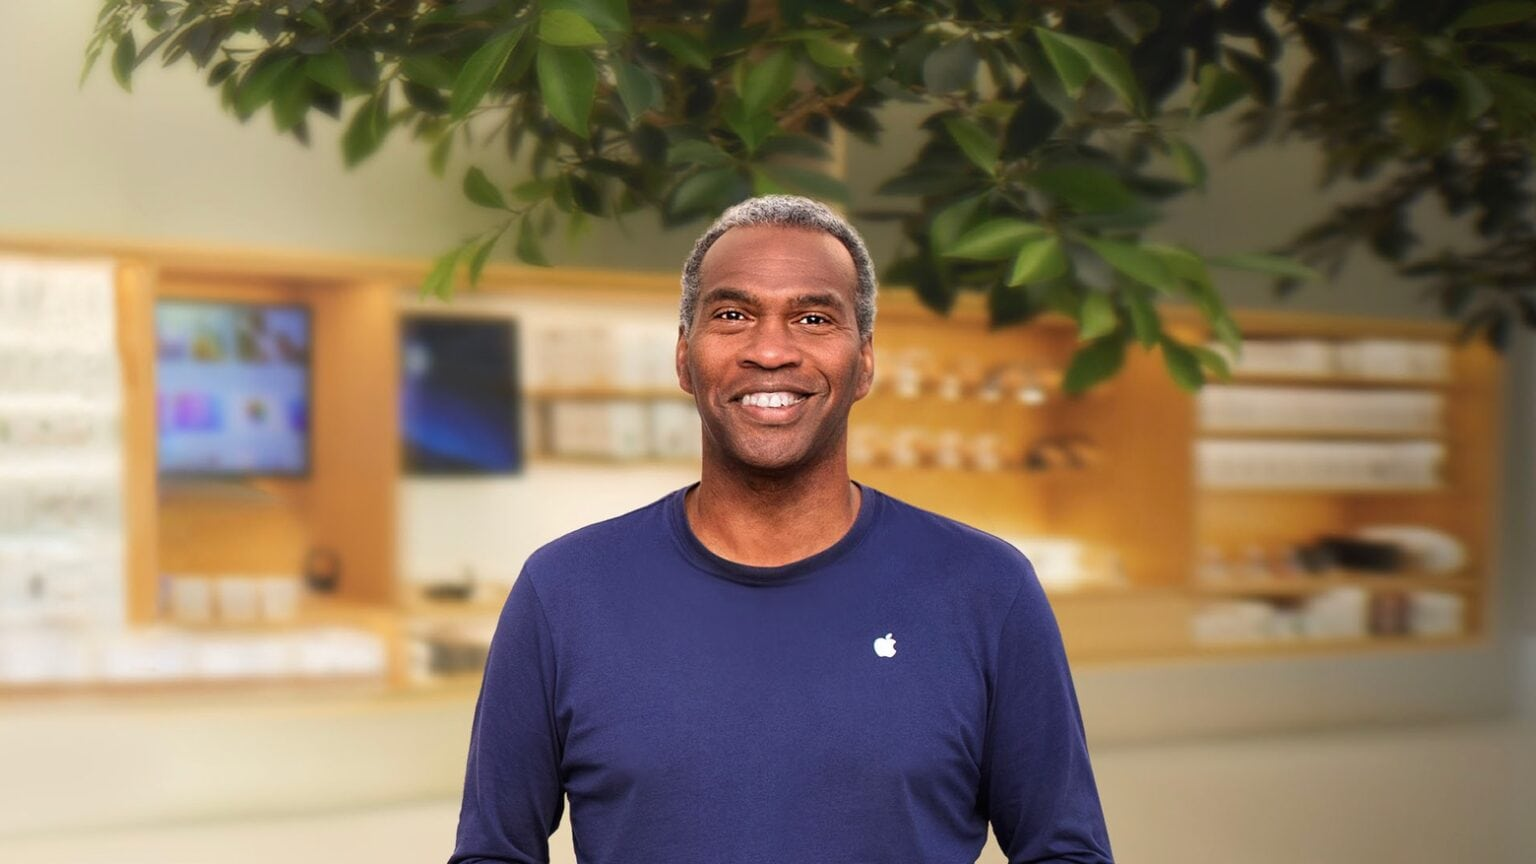 Like everyone else, Apple retail employees are being asked to work online.